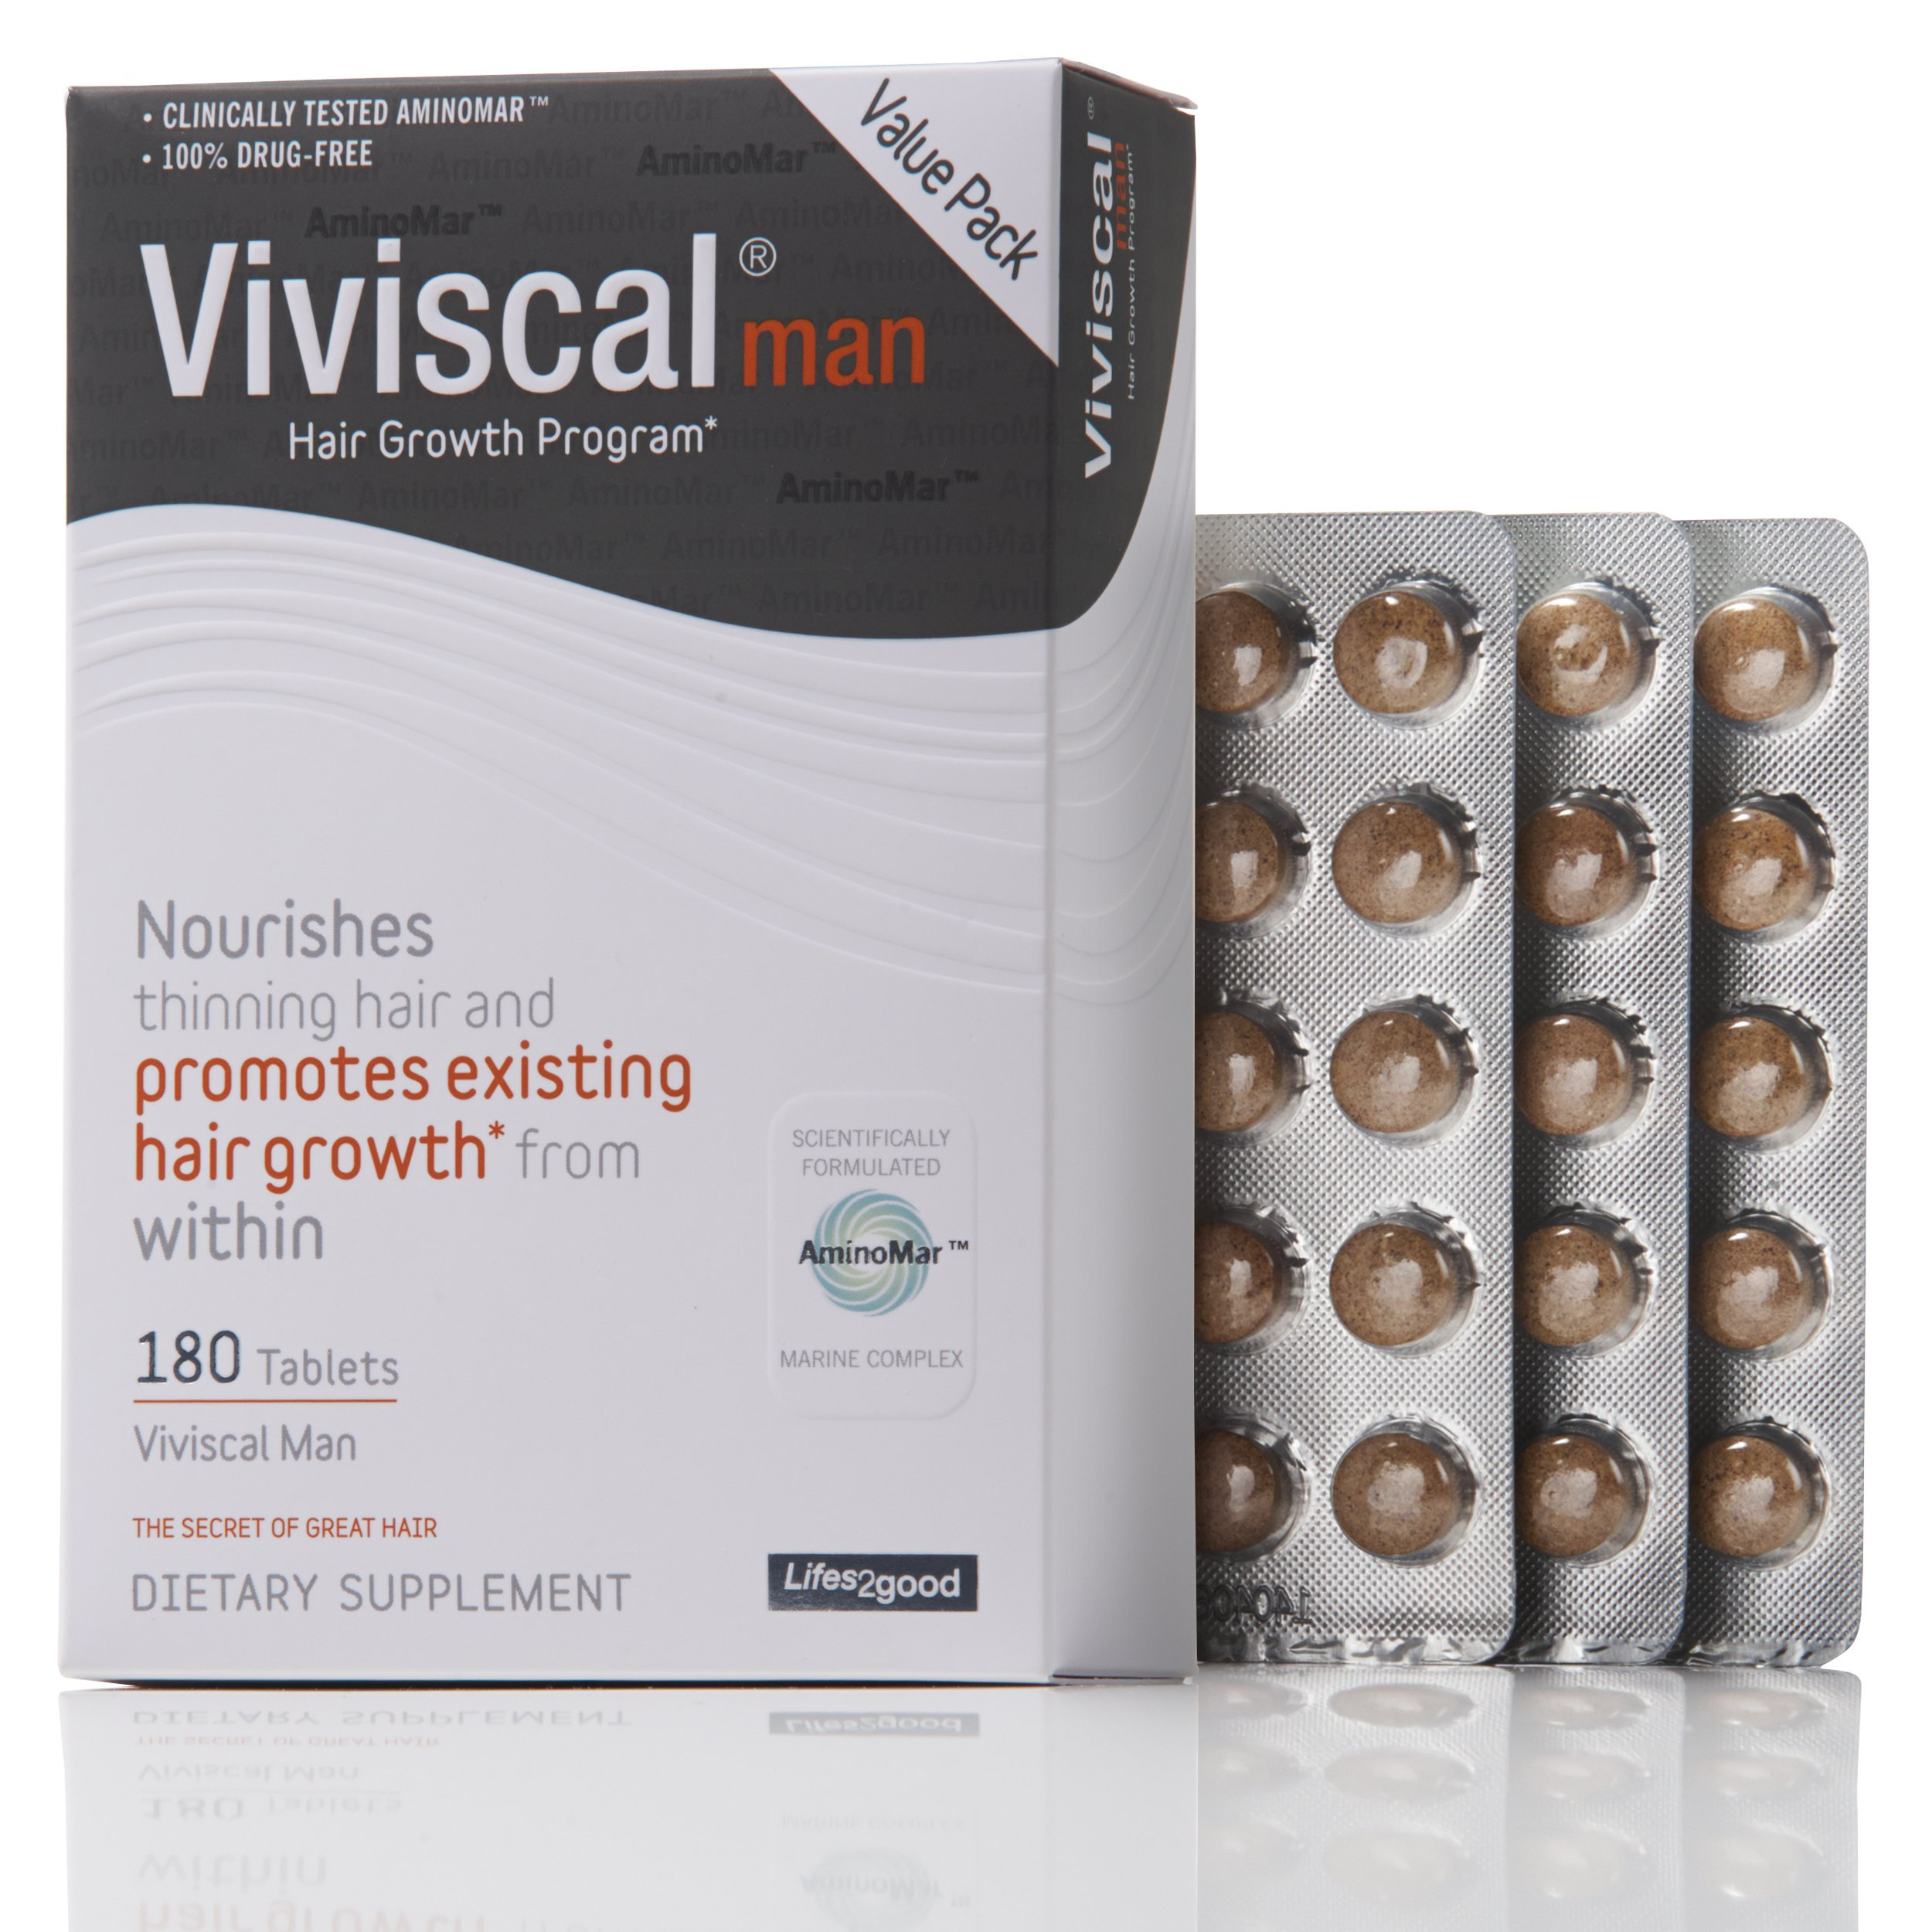 Viviscal Man #1 Hair Product For Hair Growth & Hair Thinning, 100% Drug Free Hair Supplement, 90 Day Gaurantee, 180-tabs